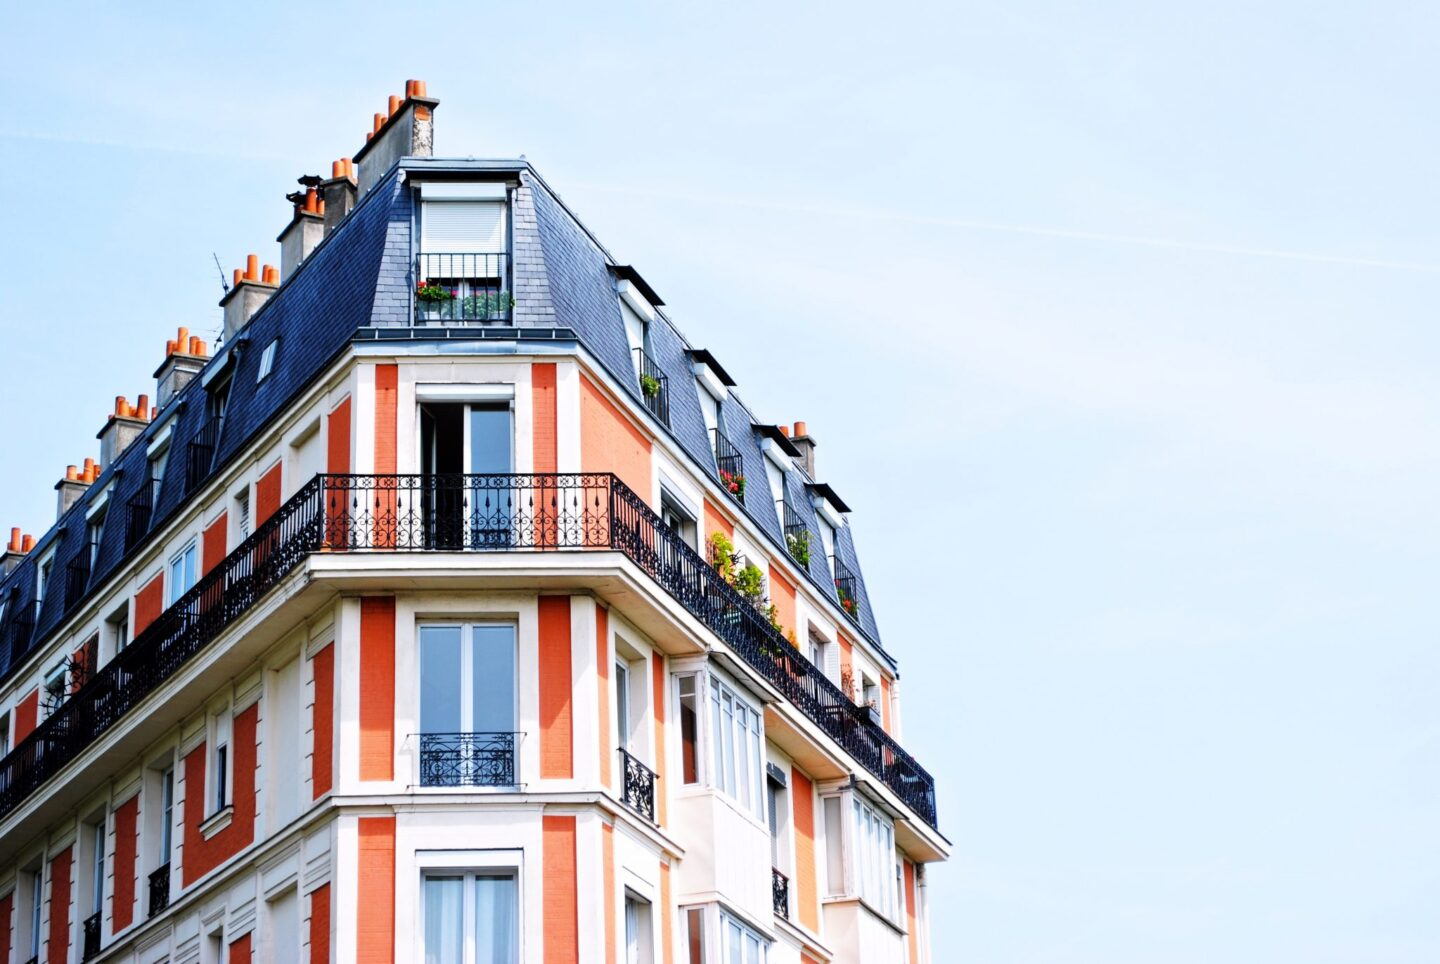 France: How To Prepare for A Long Holiday in Paris